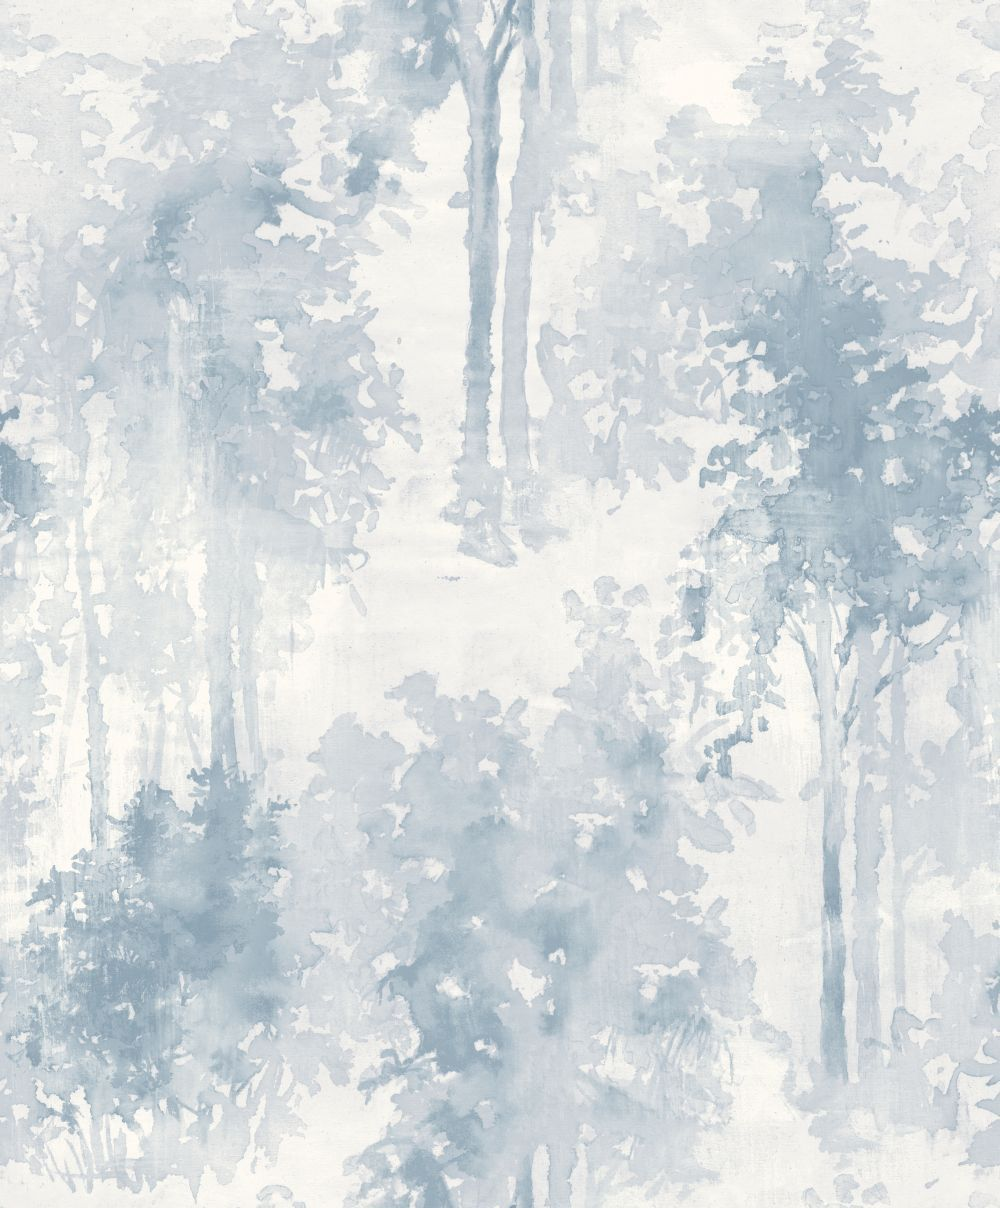 Galerie Watercolour Forest Blue Wallpaper Main Image Watercolor